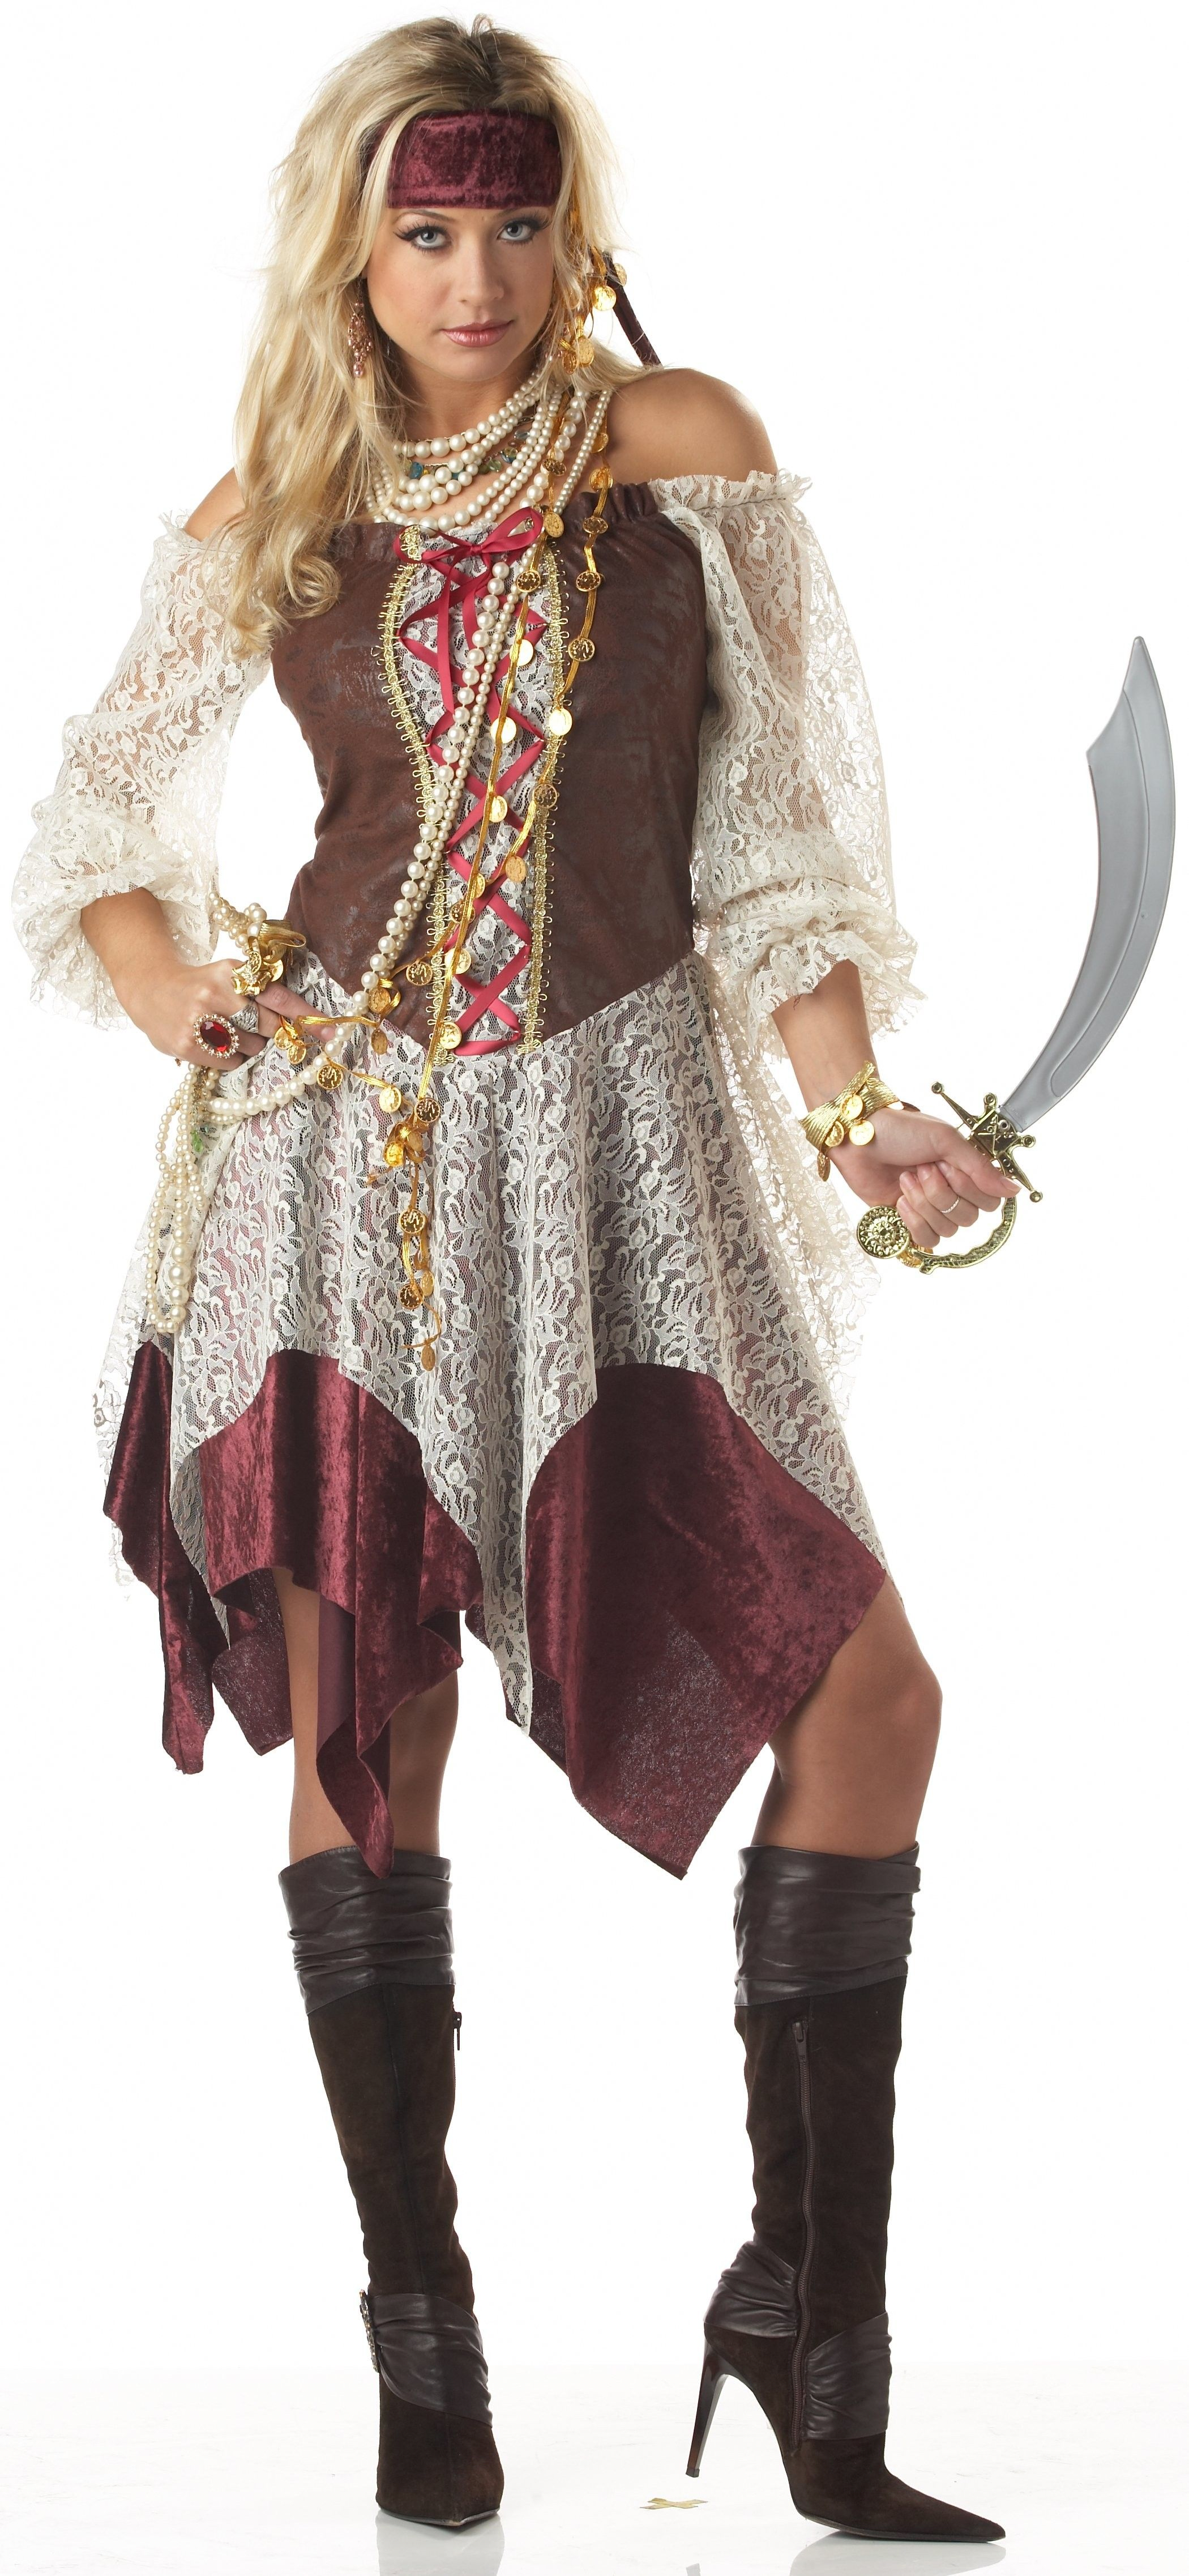 South Seas Siren Pirate Buccaneer Adult Plus Size Costume